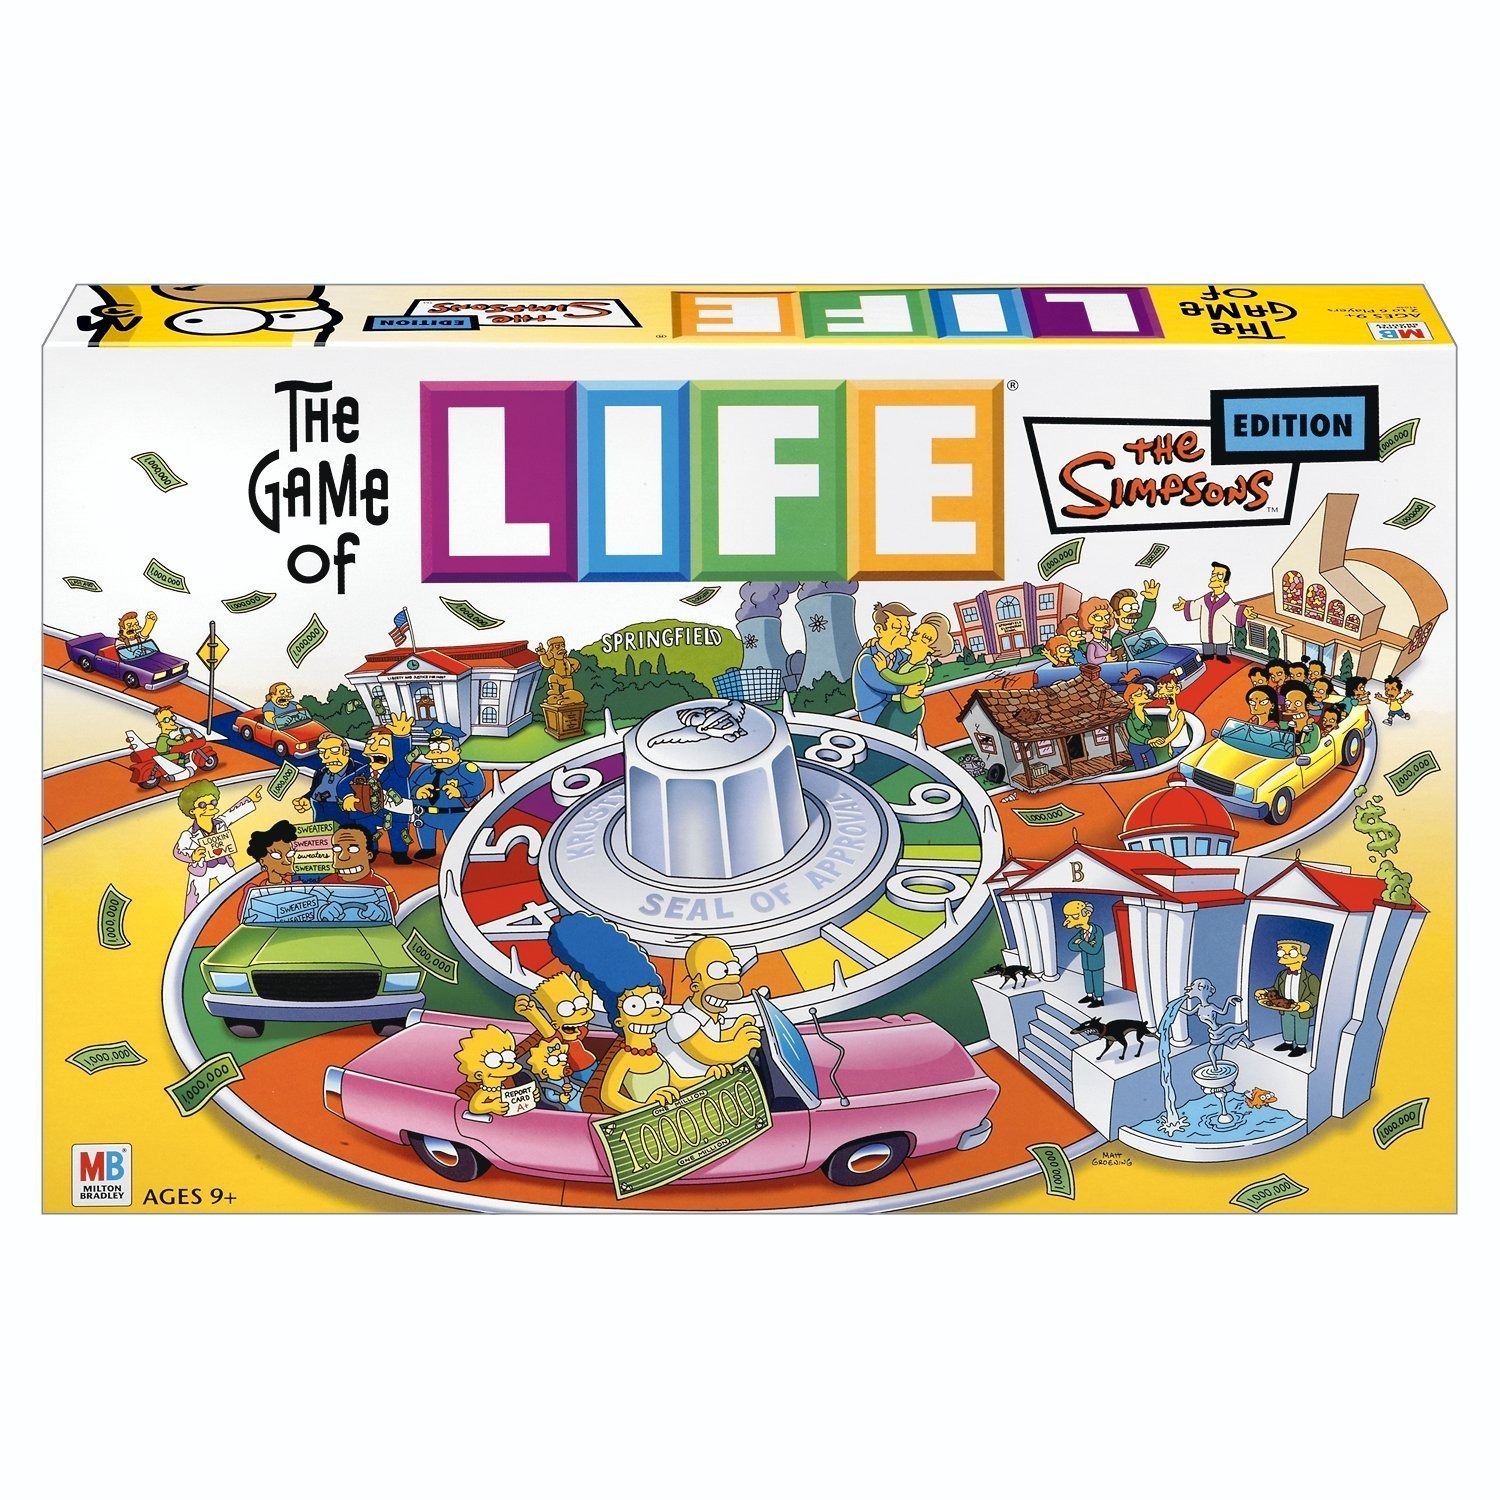 Hasbro The Game of Life - Simpsons Editionhttps://amzn.to/2WtBYPA